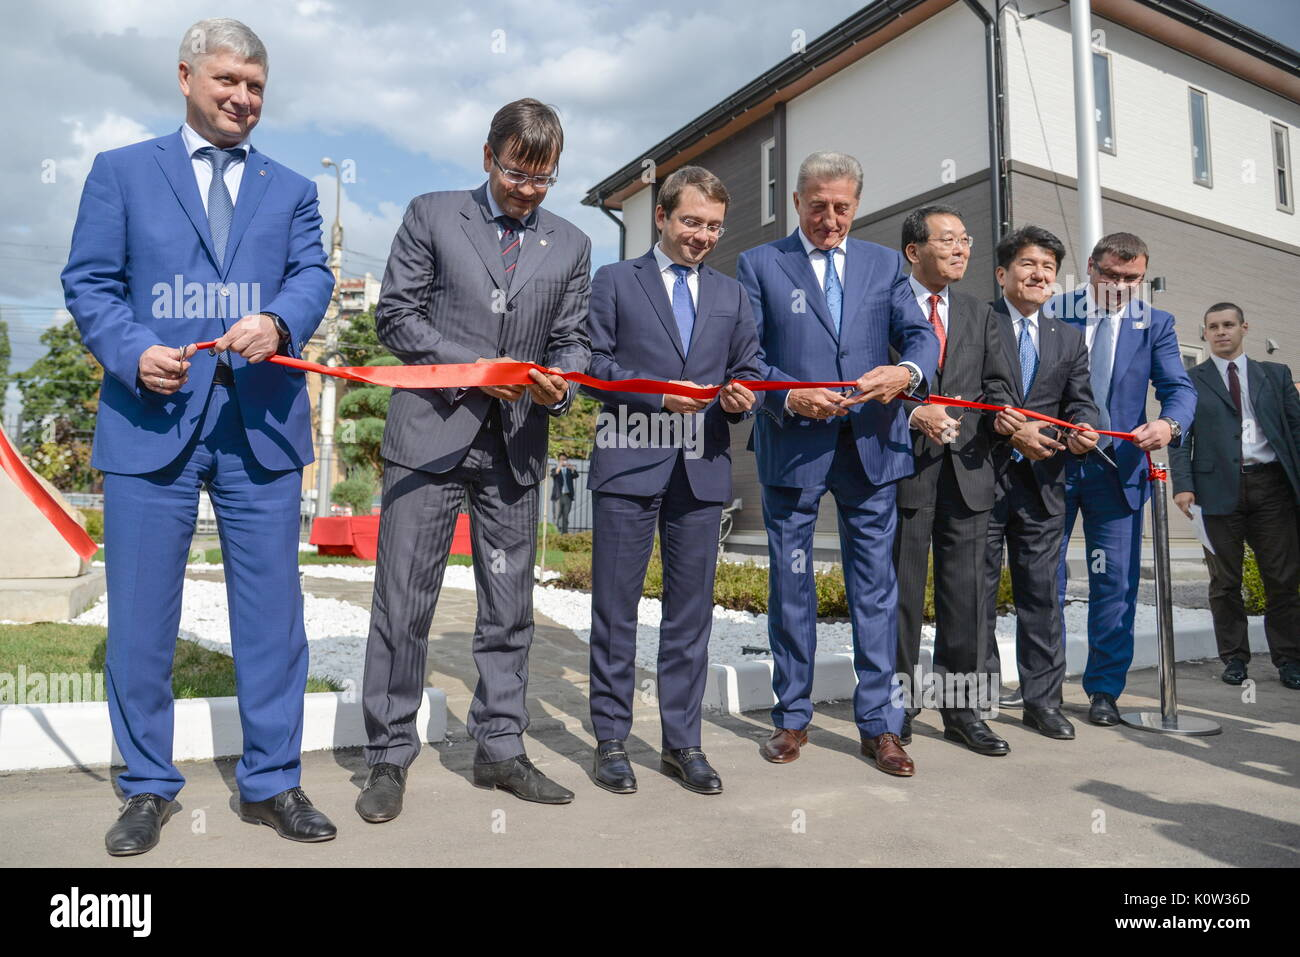 VORONEZH, RUSSIA - AUGUST 24, 2017: Voronezh Mayor Alexander Gusev (L), Russia's Deputy Construction, Housing and Utilities Minister Andrei Chibis (3rd L), Japan's Deputy Land, Infrastructure, Transport and Tourism Minister Koichi Yoshida (4th R), Nice Holdings, Inc. President and Representative Director Kiyoshi Higurashi (3rd R), and Voronezh State Technical University Rector Sergei Kolodyazhny (2nd R) at the opening of the first Russian-Japanese two-storey smart home made of wood and eco-friendly materials. The house is equipped with energy management system, air quality monitors and tempera - Stock Image